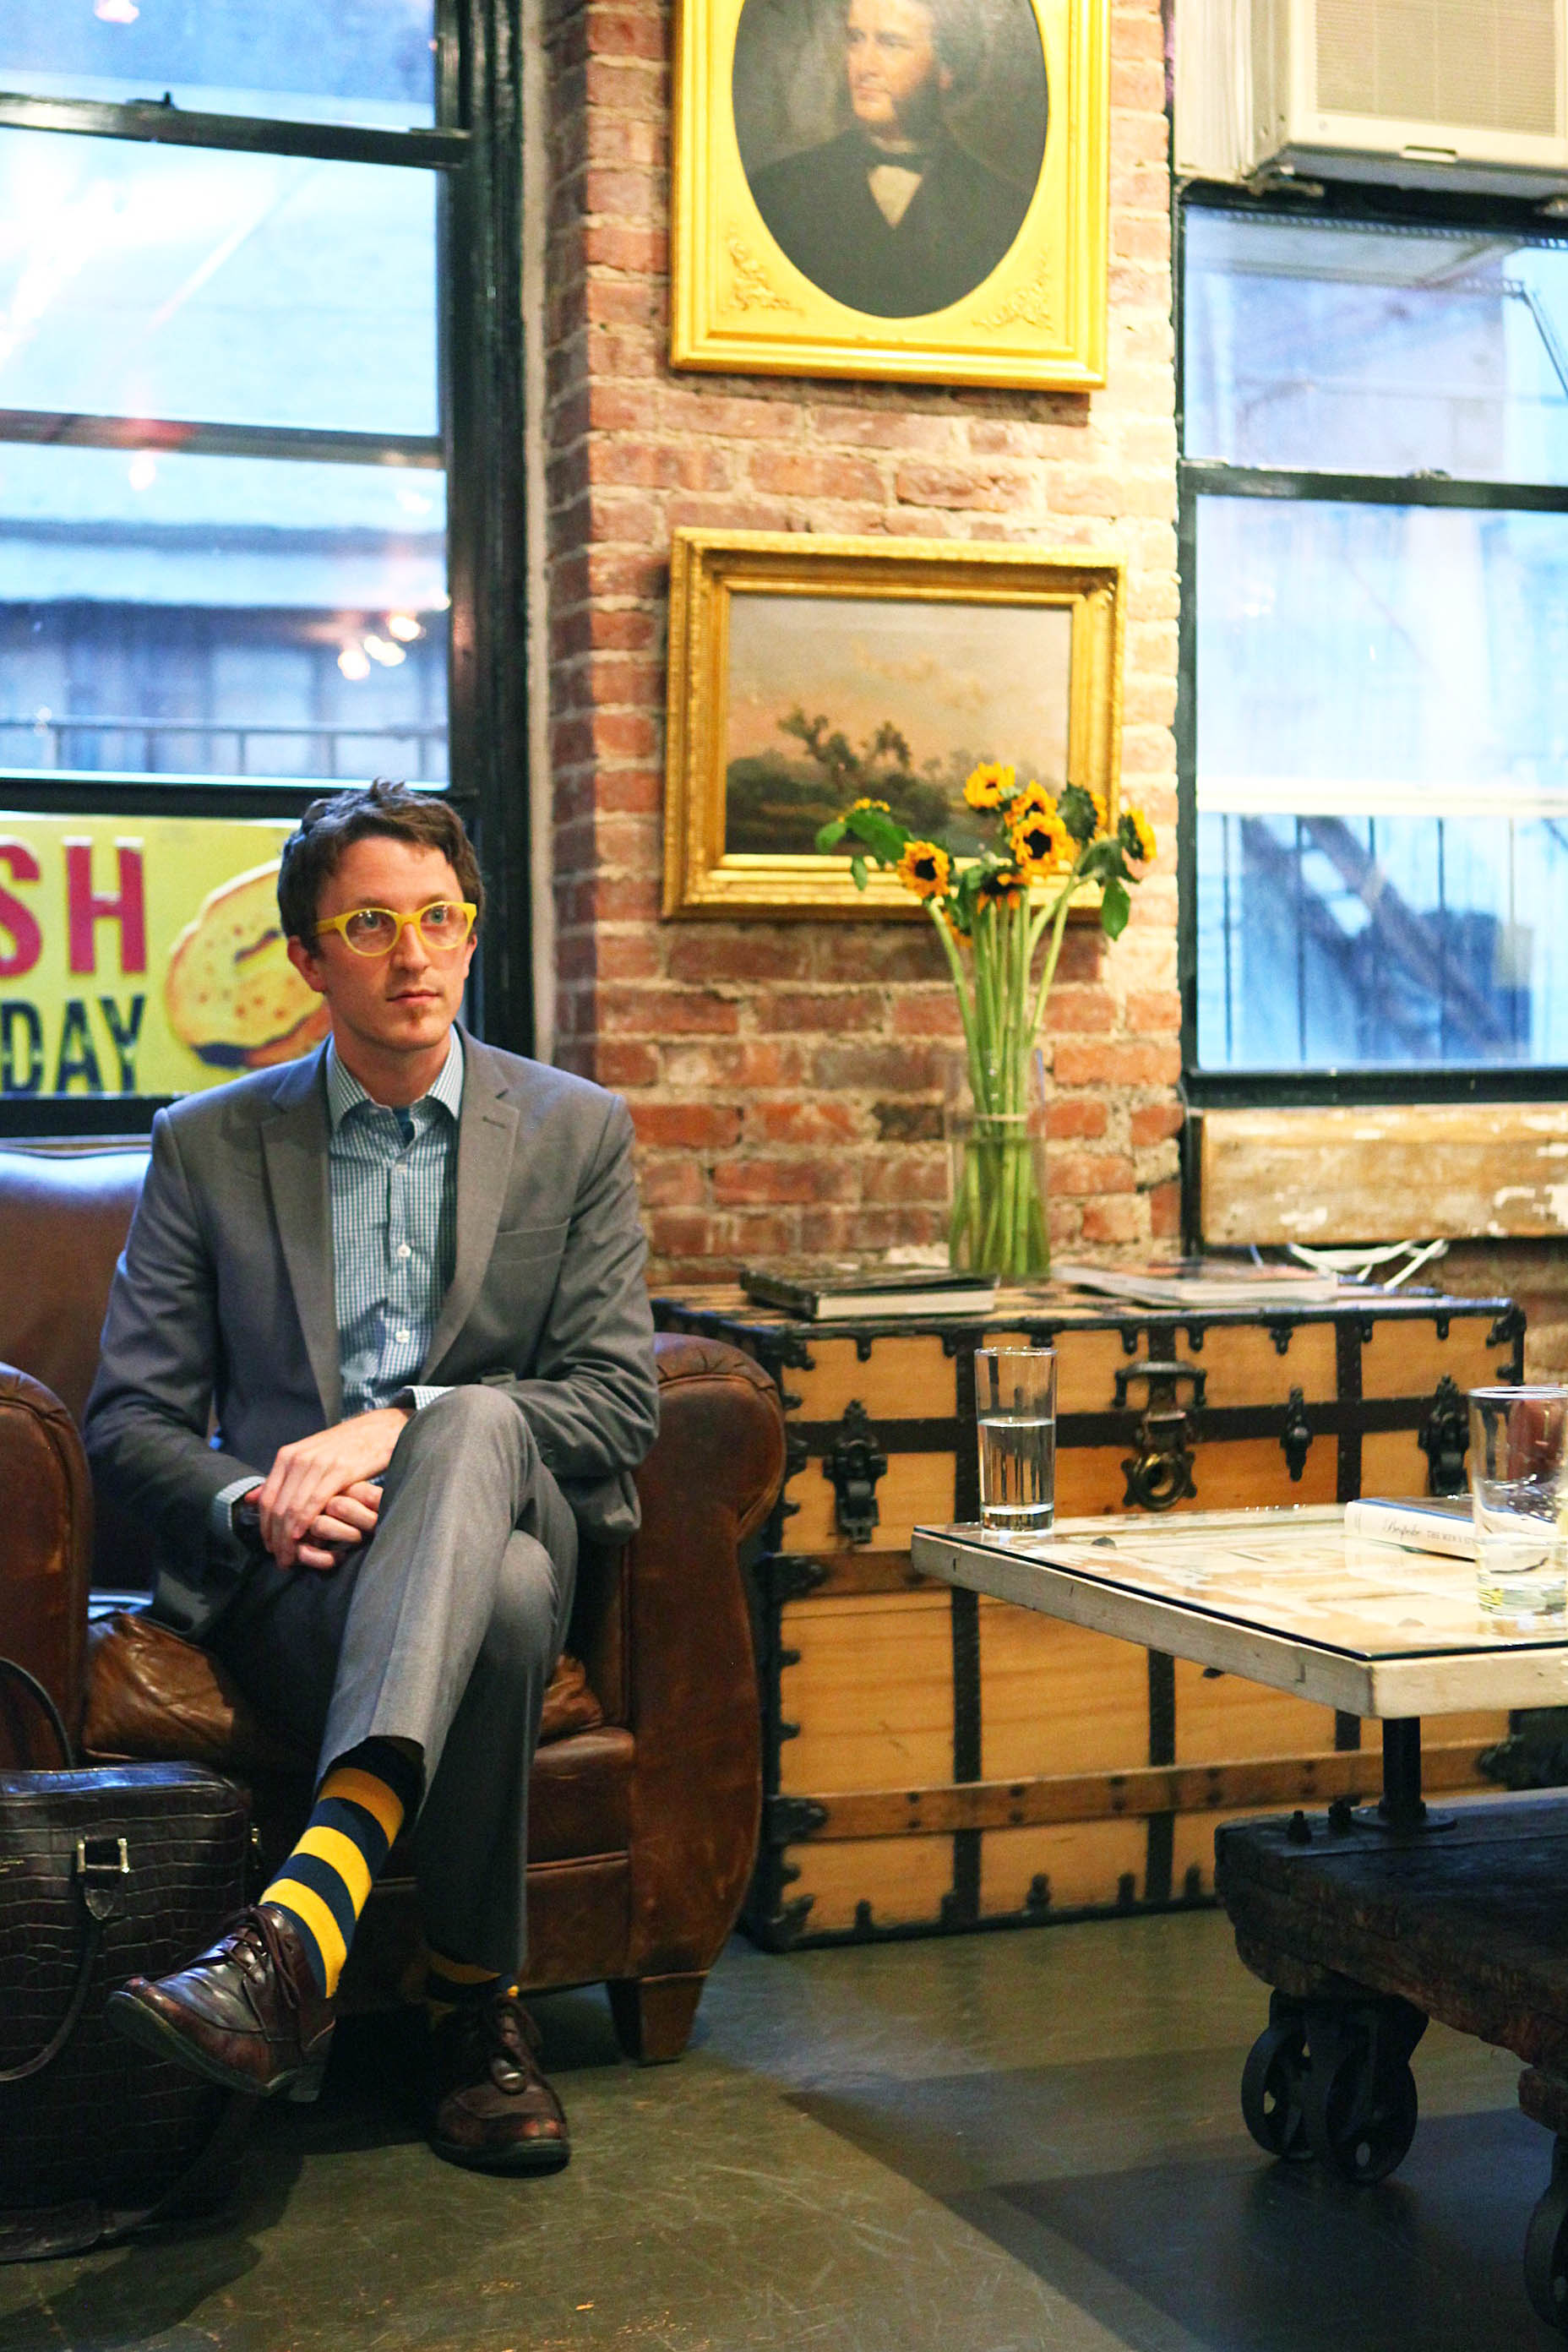 Wednesday evening I was the host of the aptly named Whiskey Wednesday at the Alexander Nash NYC studio. It was a great opportunity to meet new people and to soak in the glory that is the Alexander Nash boutique. Fashitect (Toni Tran) was able to join us and snapped this shot as a test for his own photographs.